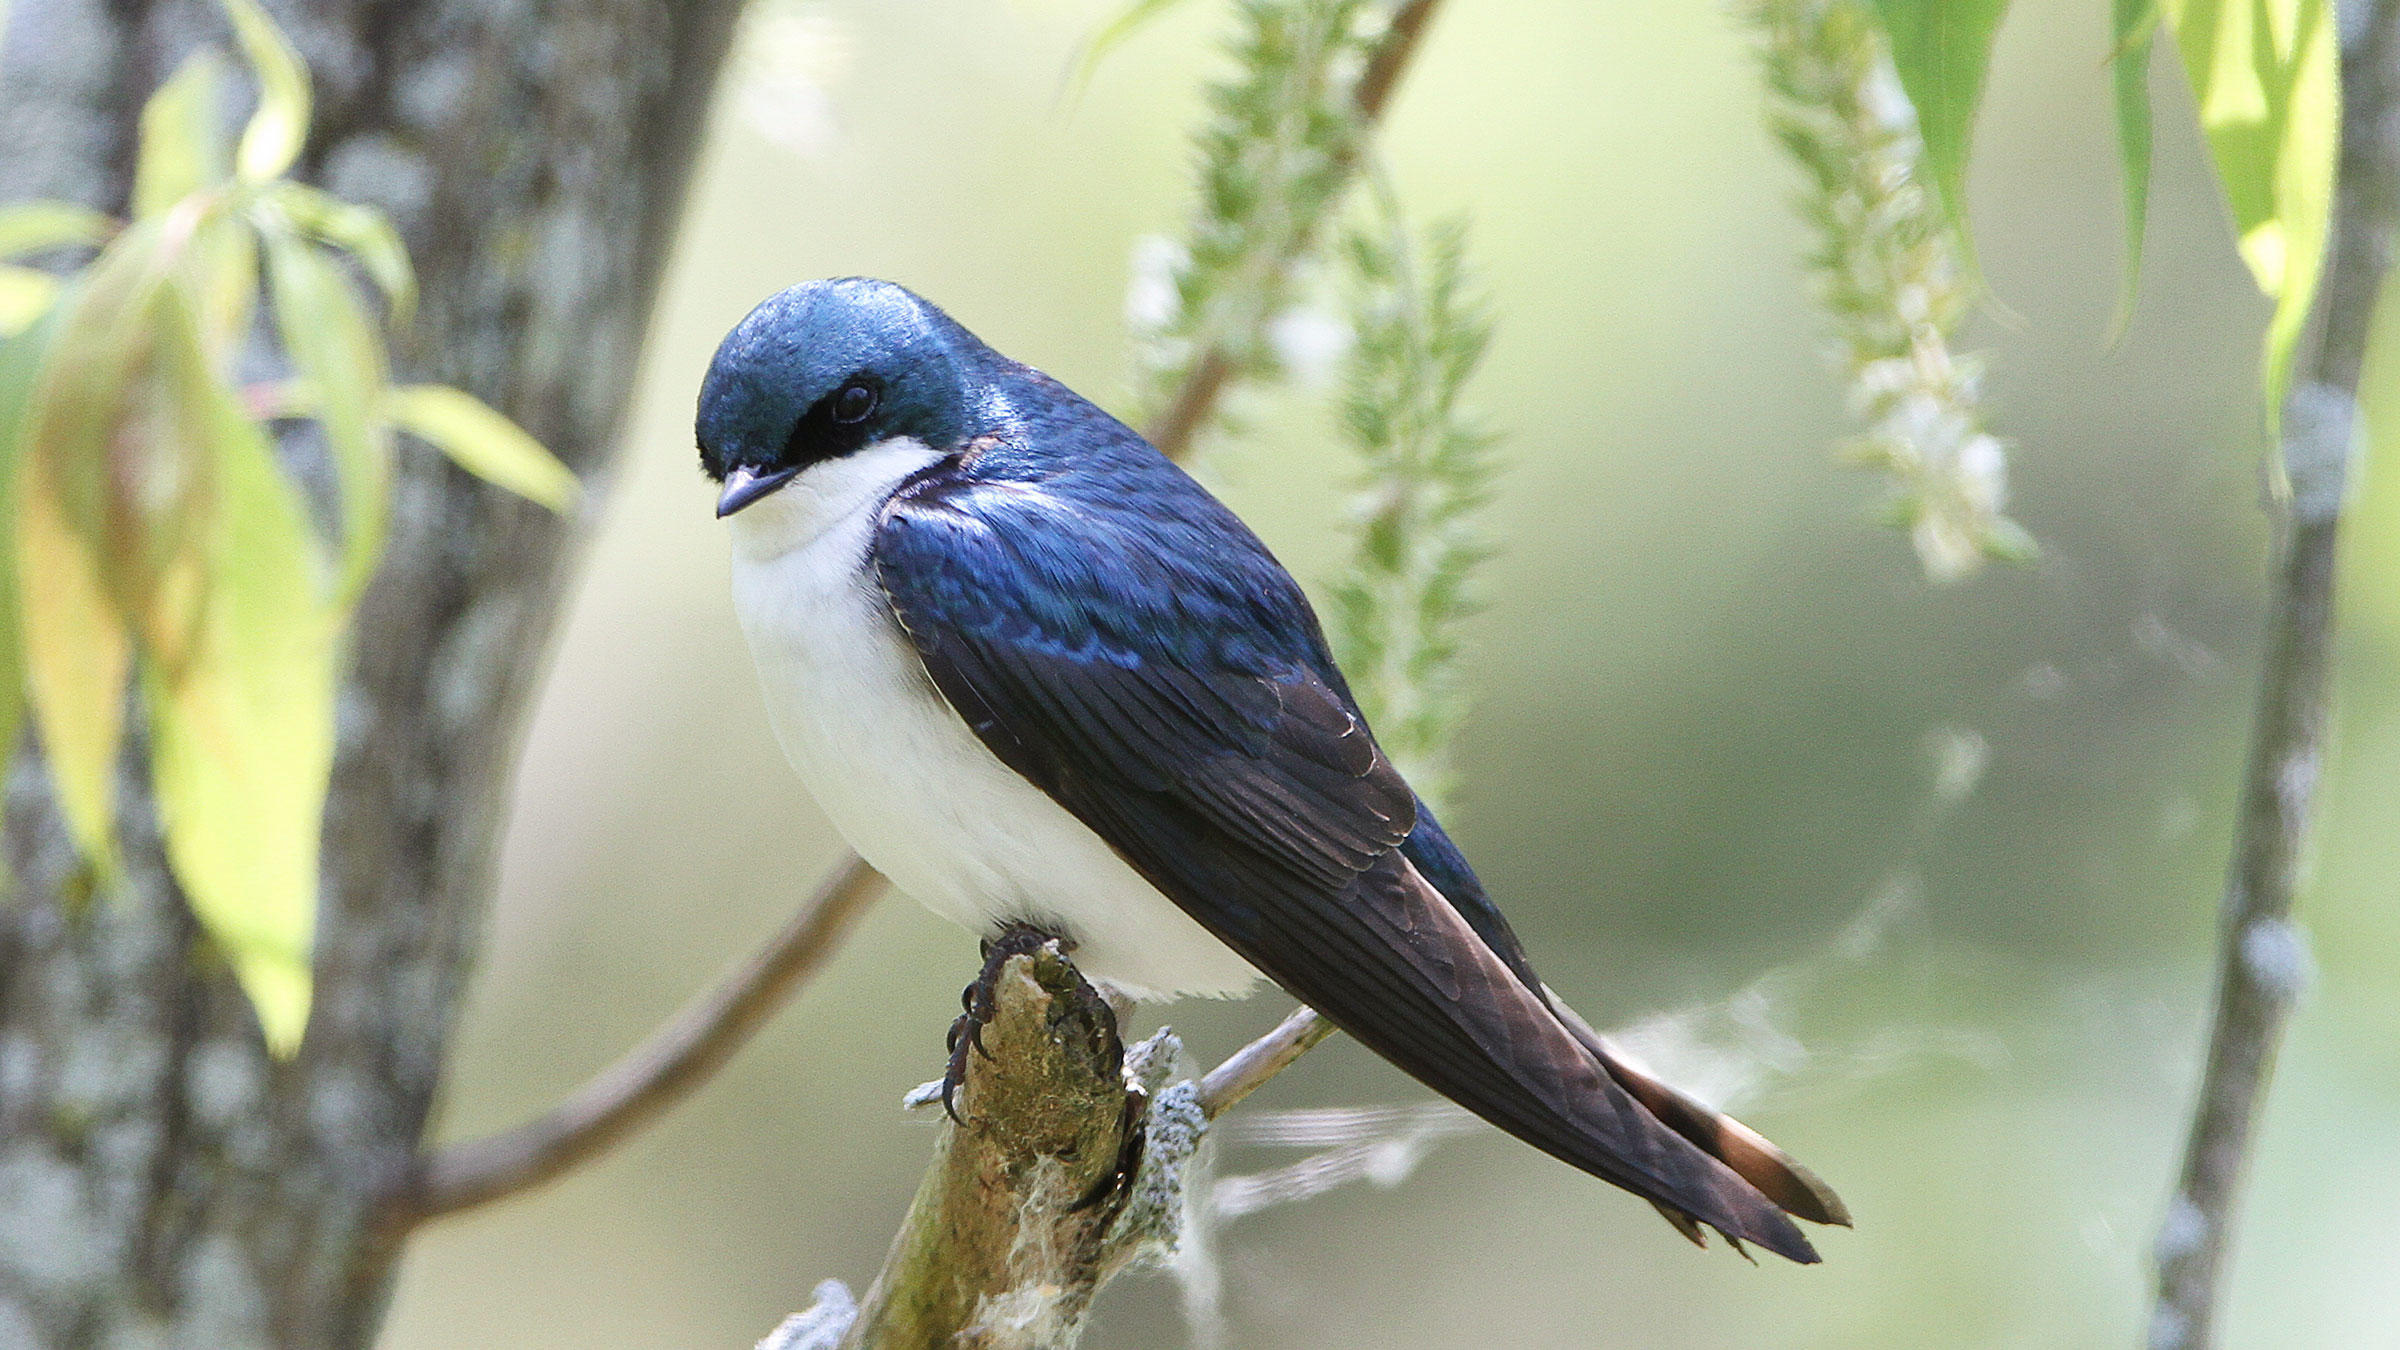 Tree Swallows spend the winter farther north than other related species. But they might start relocating as soon as they're encouraged by mild weather. Kenn Kaufman